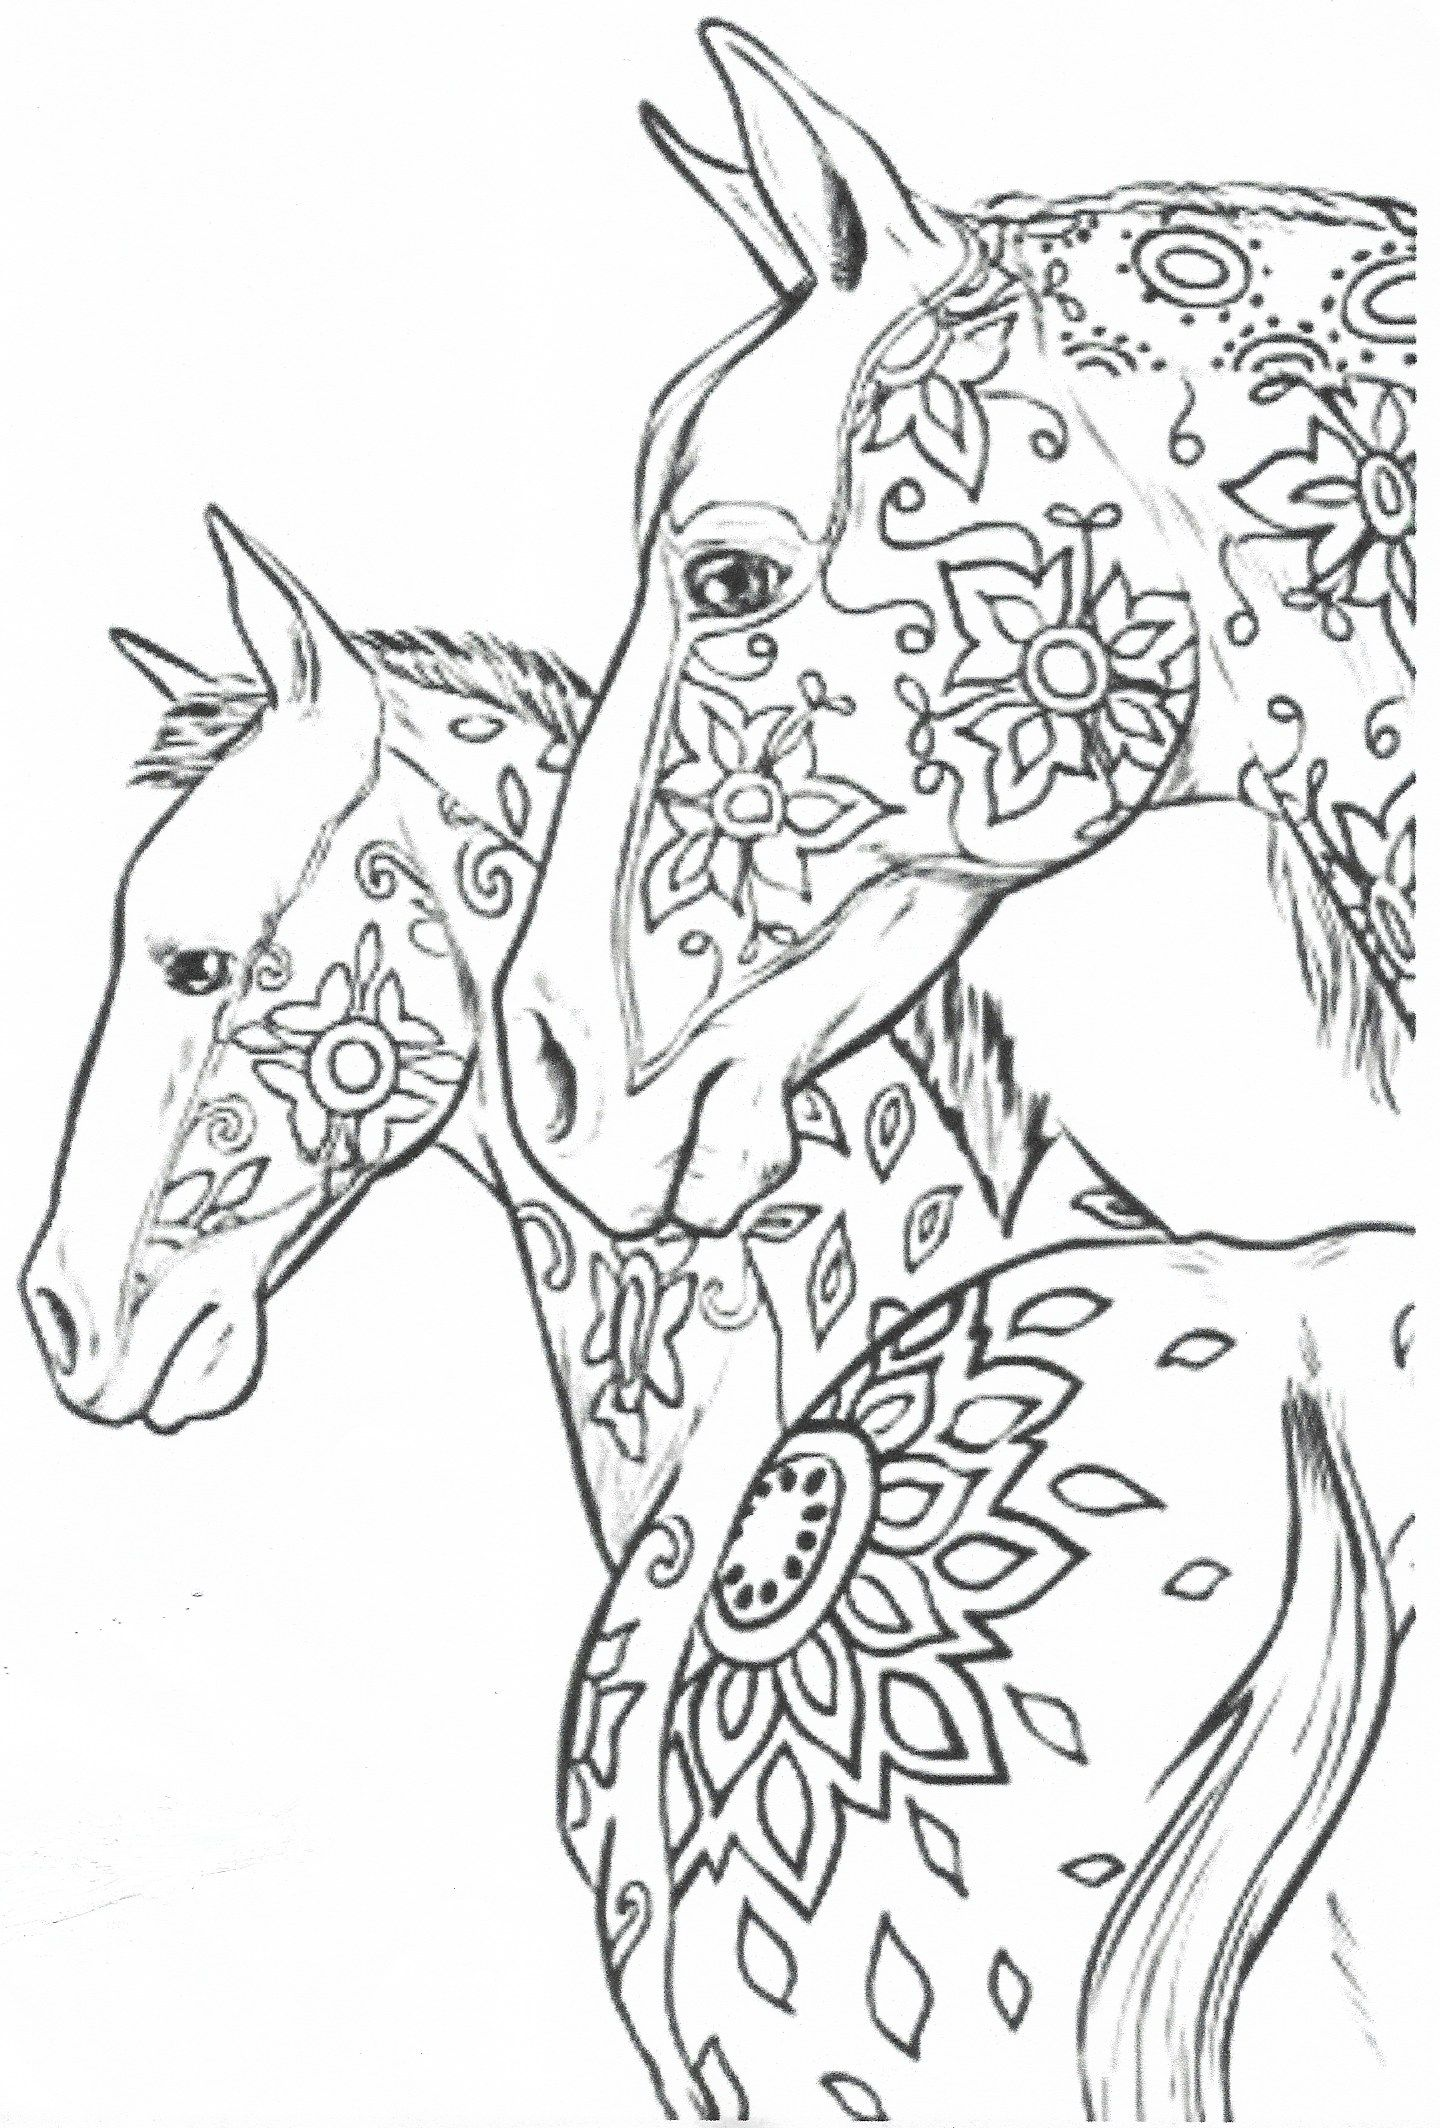 Pin by Wanda Twellman on Coloring Horses | Horse coloring ...